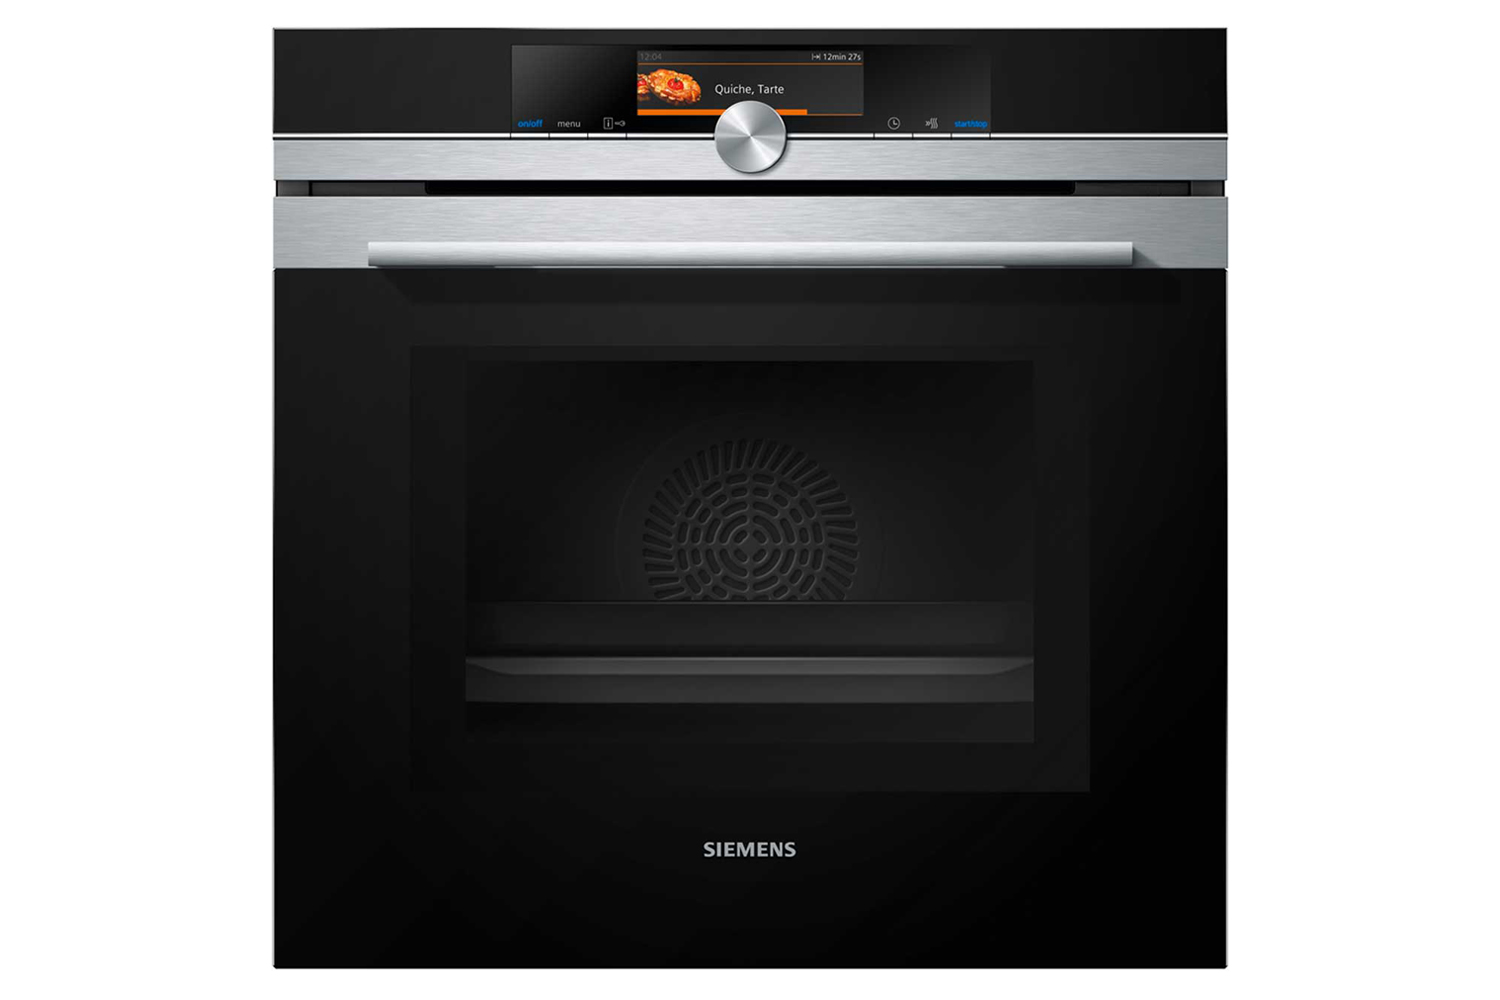 Siemens Iq700 Oven With Microwave Hm678g4s6b Ireland Printed Circuit Board Repairs For Tumble Dryers Aeg Electrolux